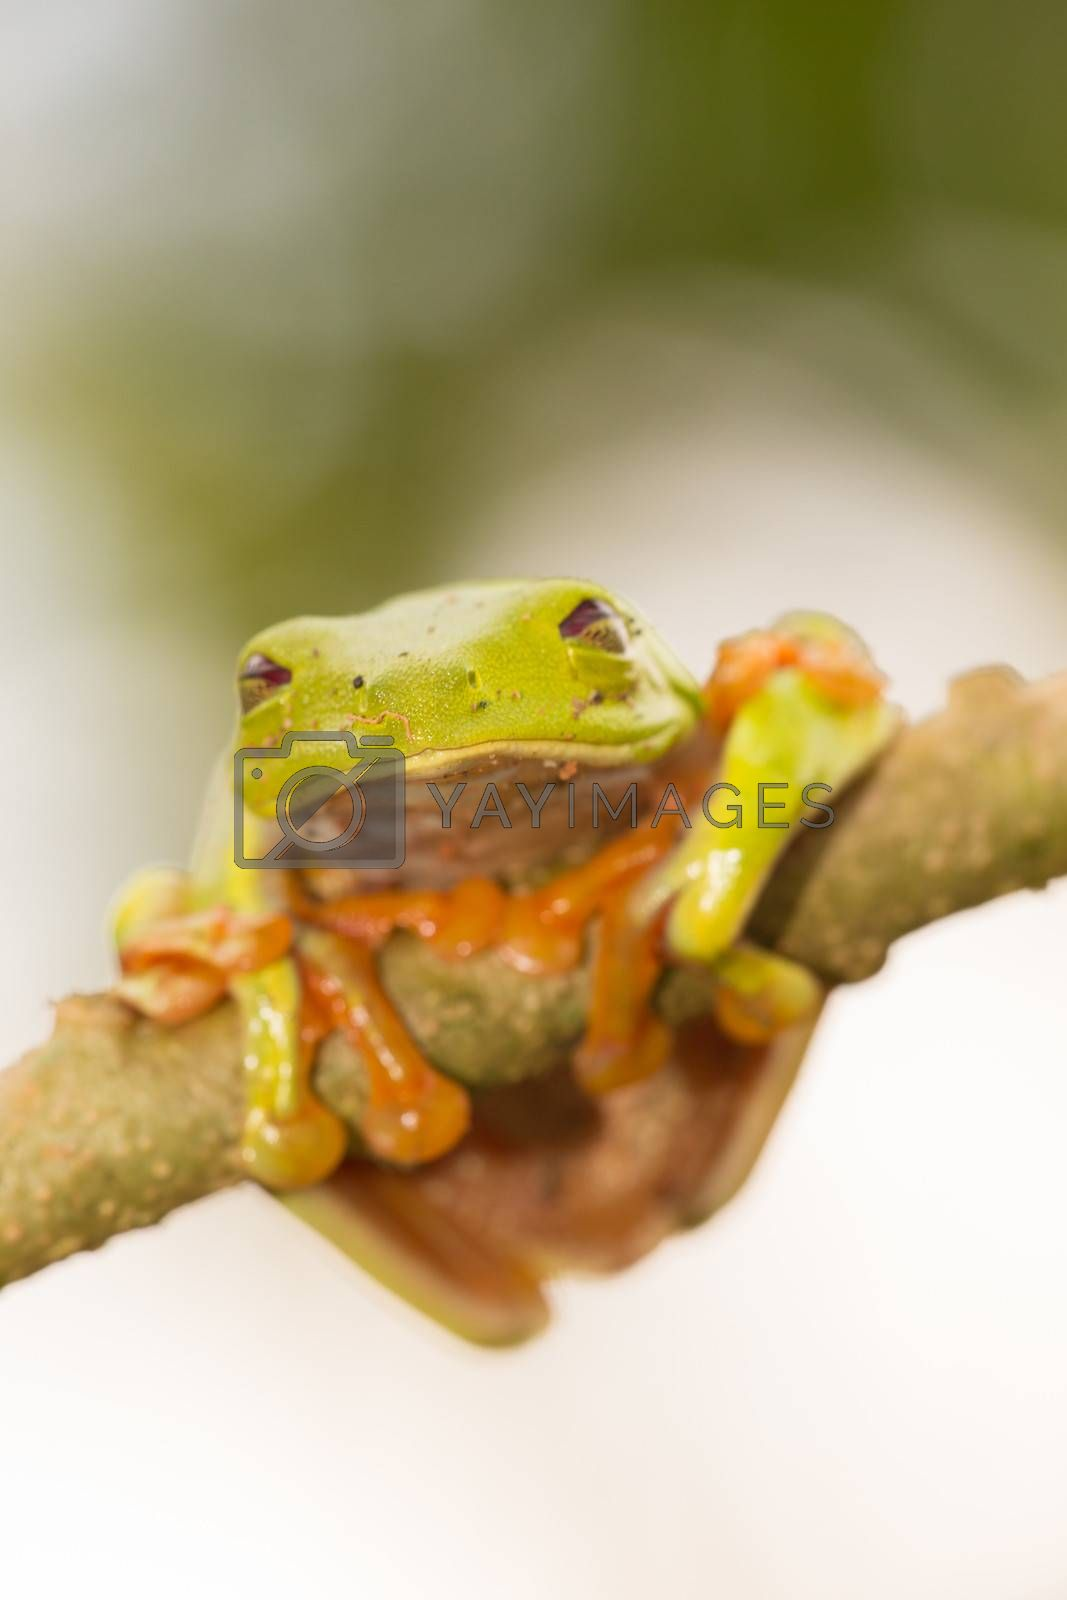 A macro shot of a Red-Eyed Tree Frog (Agalychnis callidryas) sitting along a tree branch